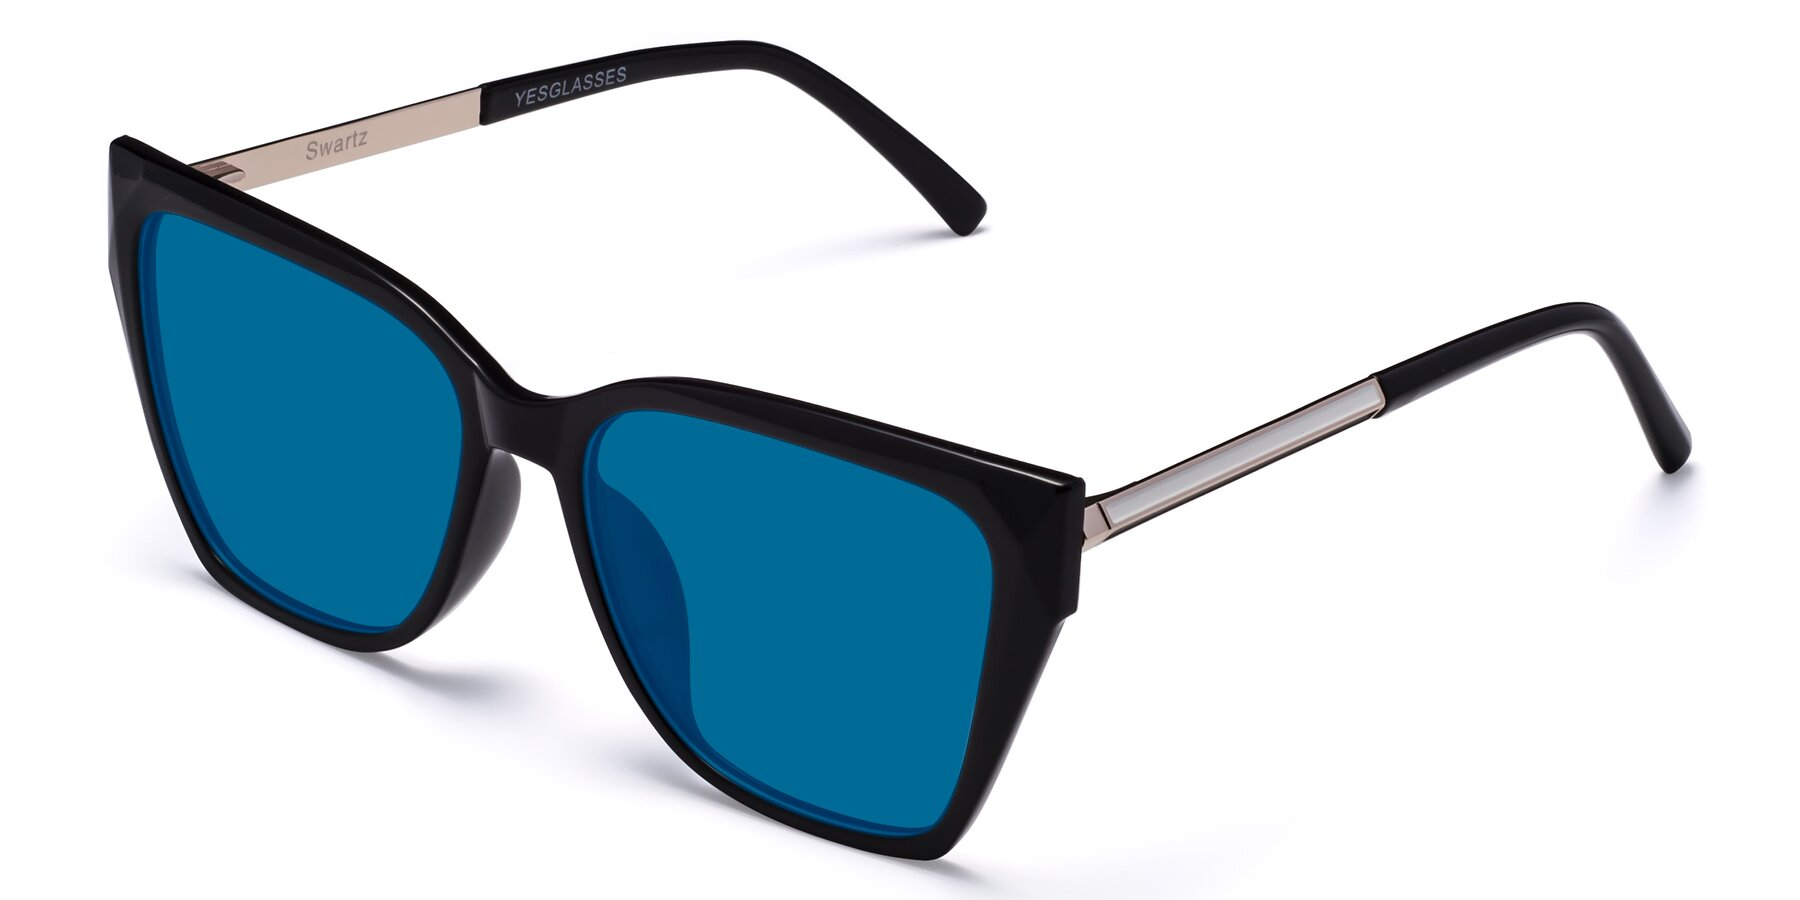 Angle of Swartz in Black with Blue Tinted Lenses